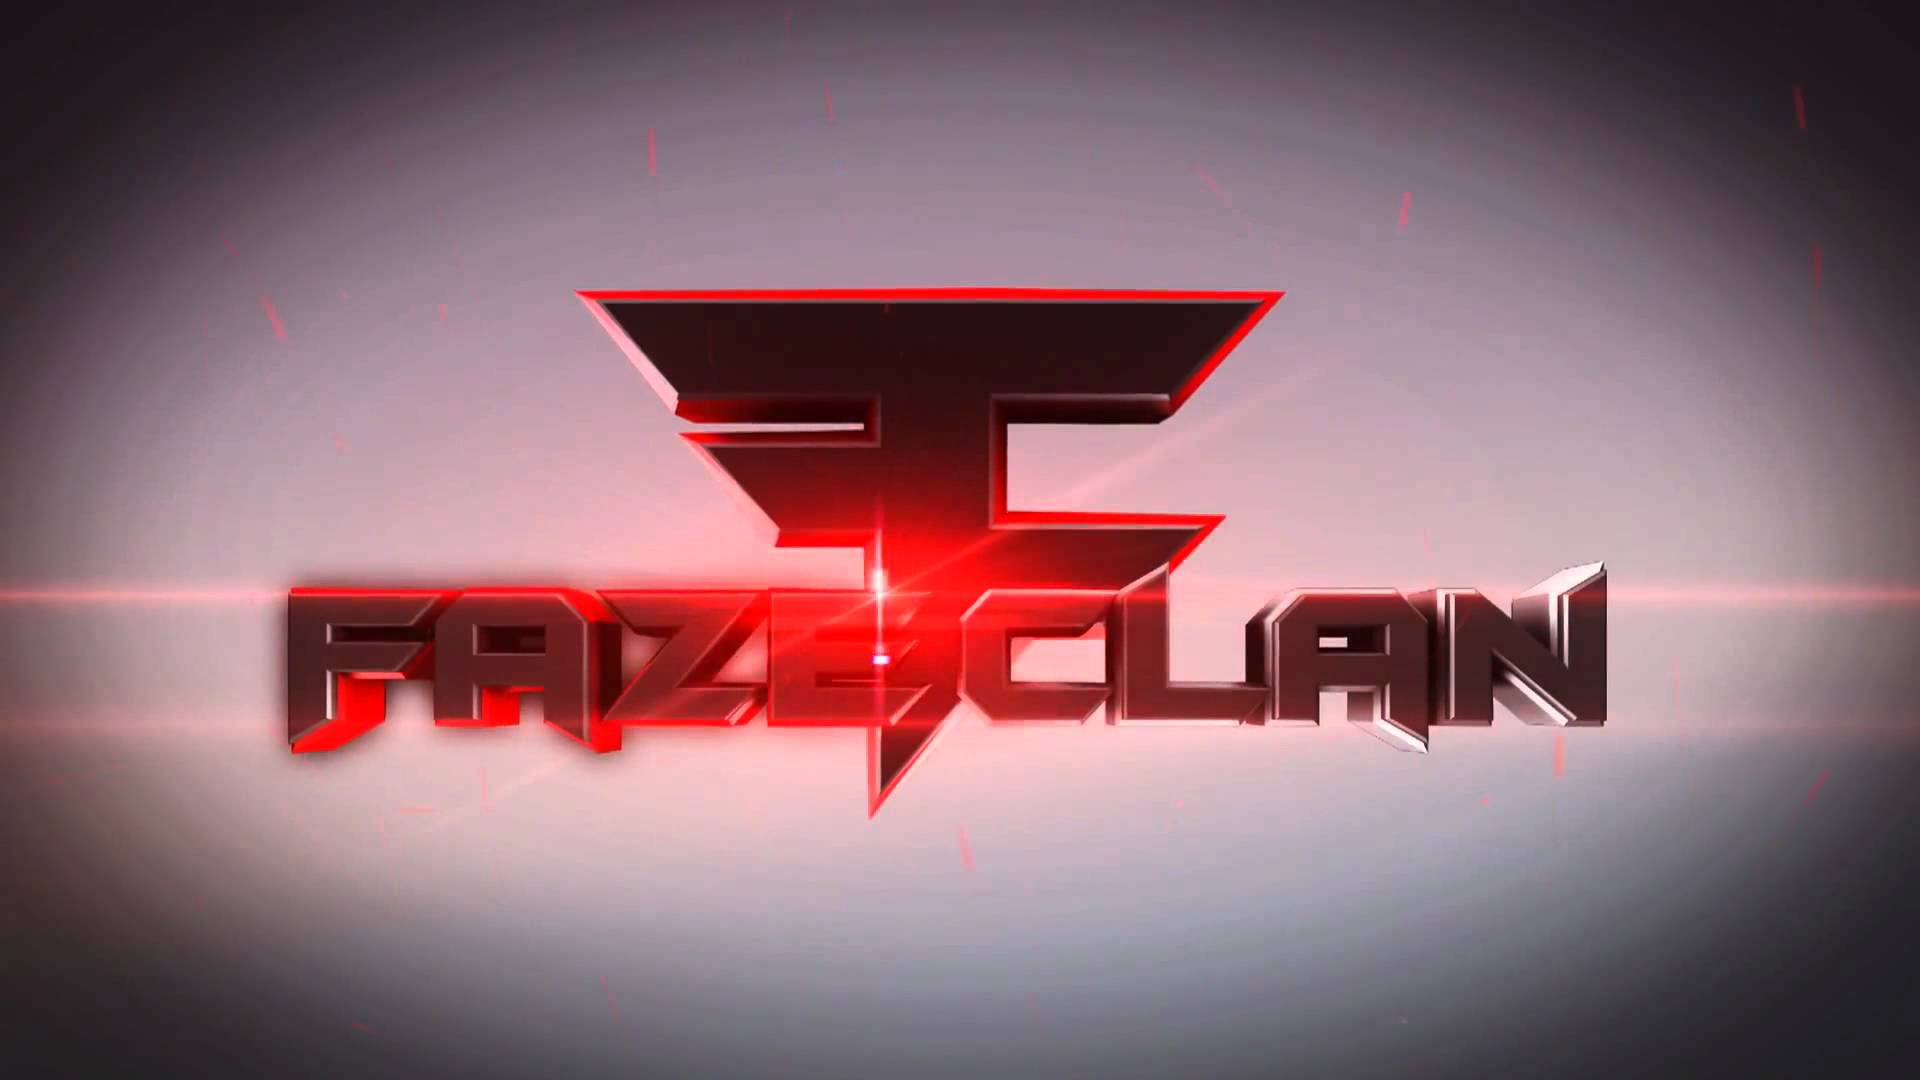 faze clan wallpapers - wallpaper cave